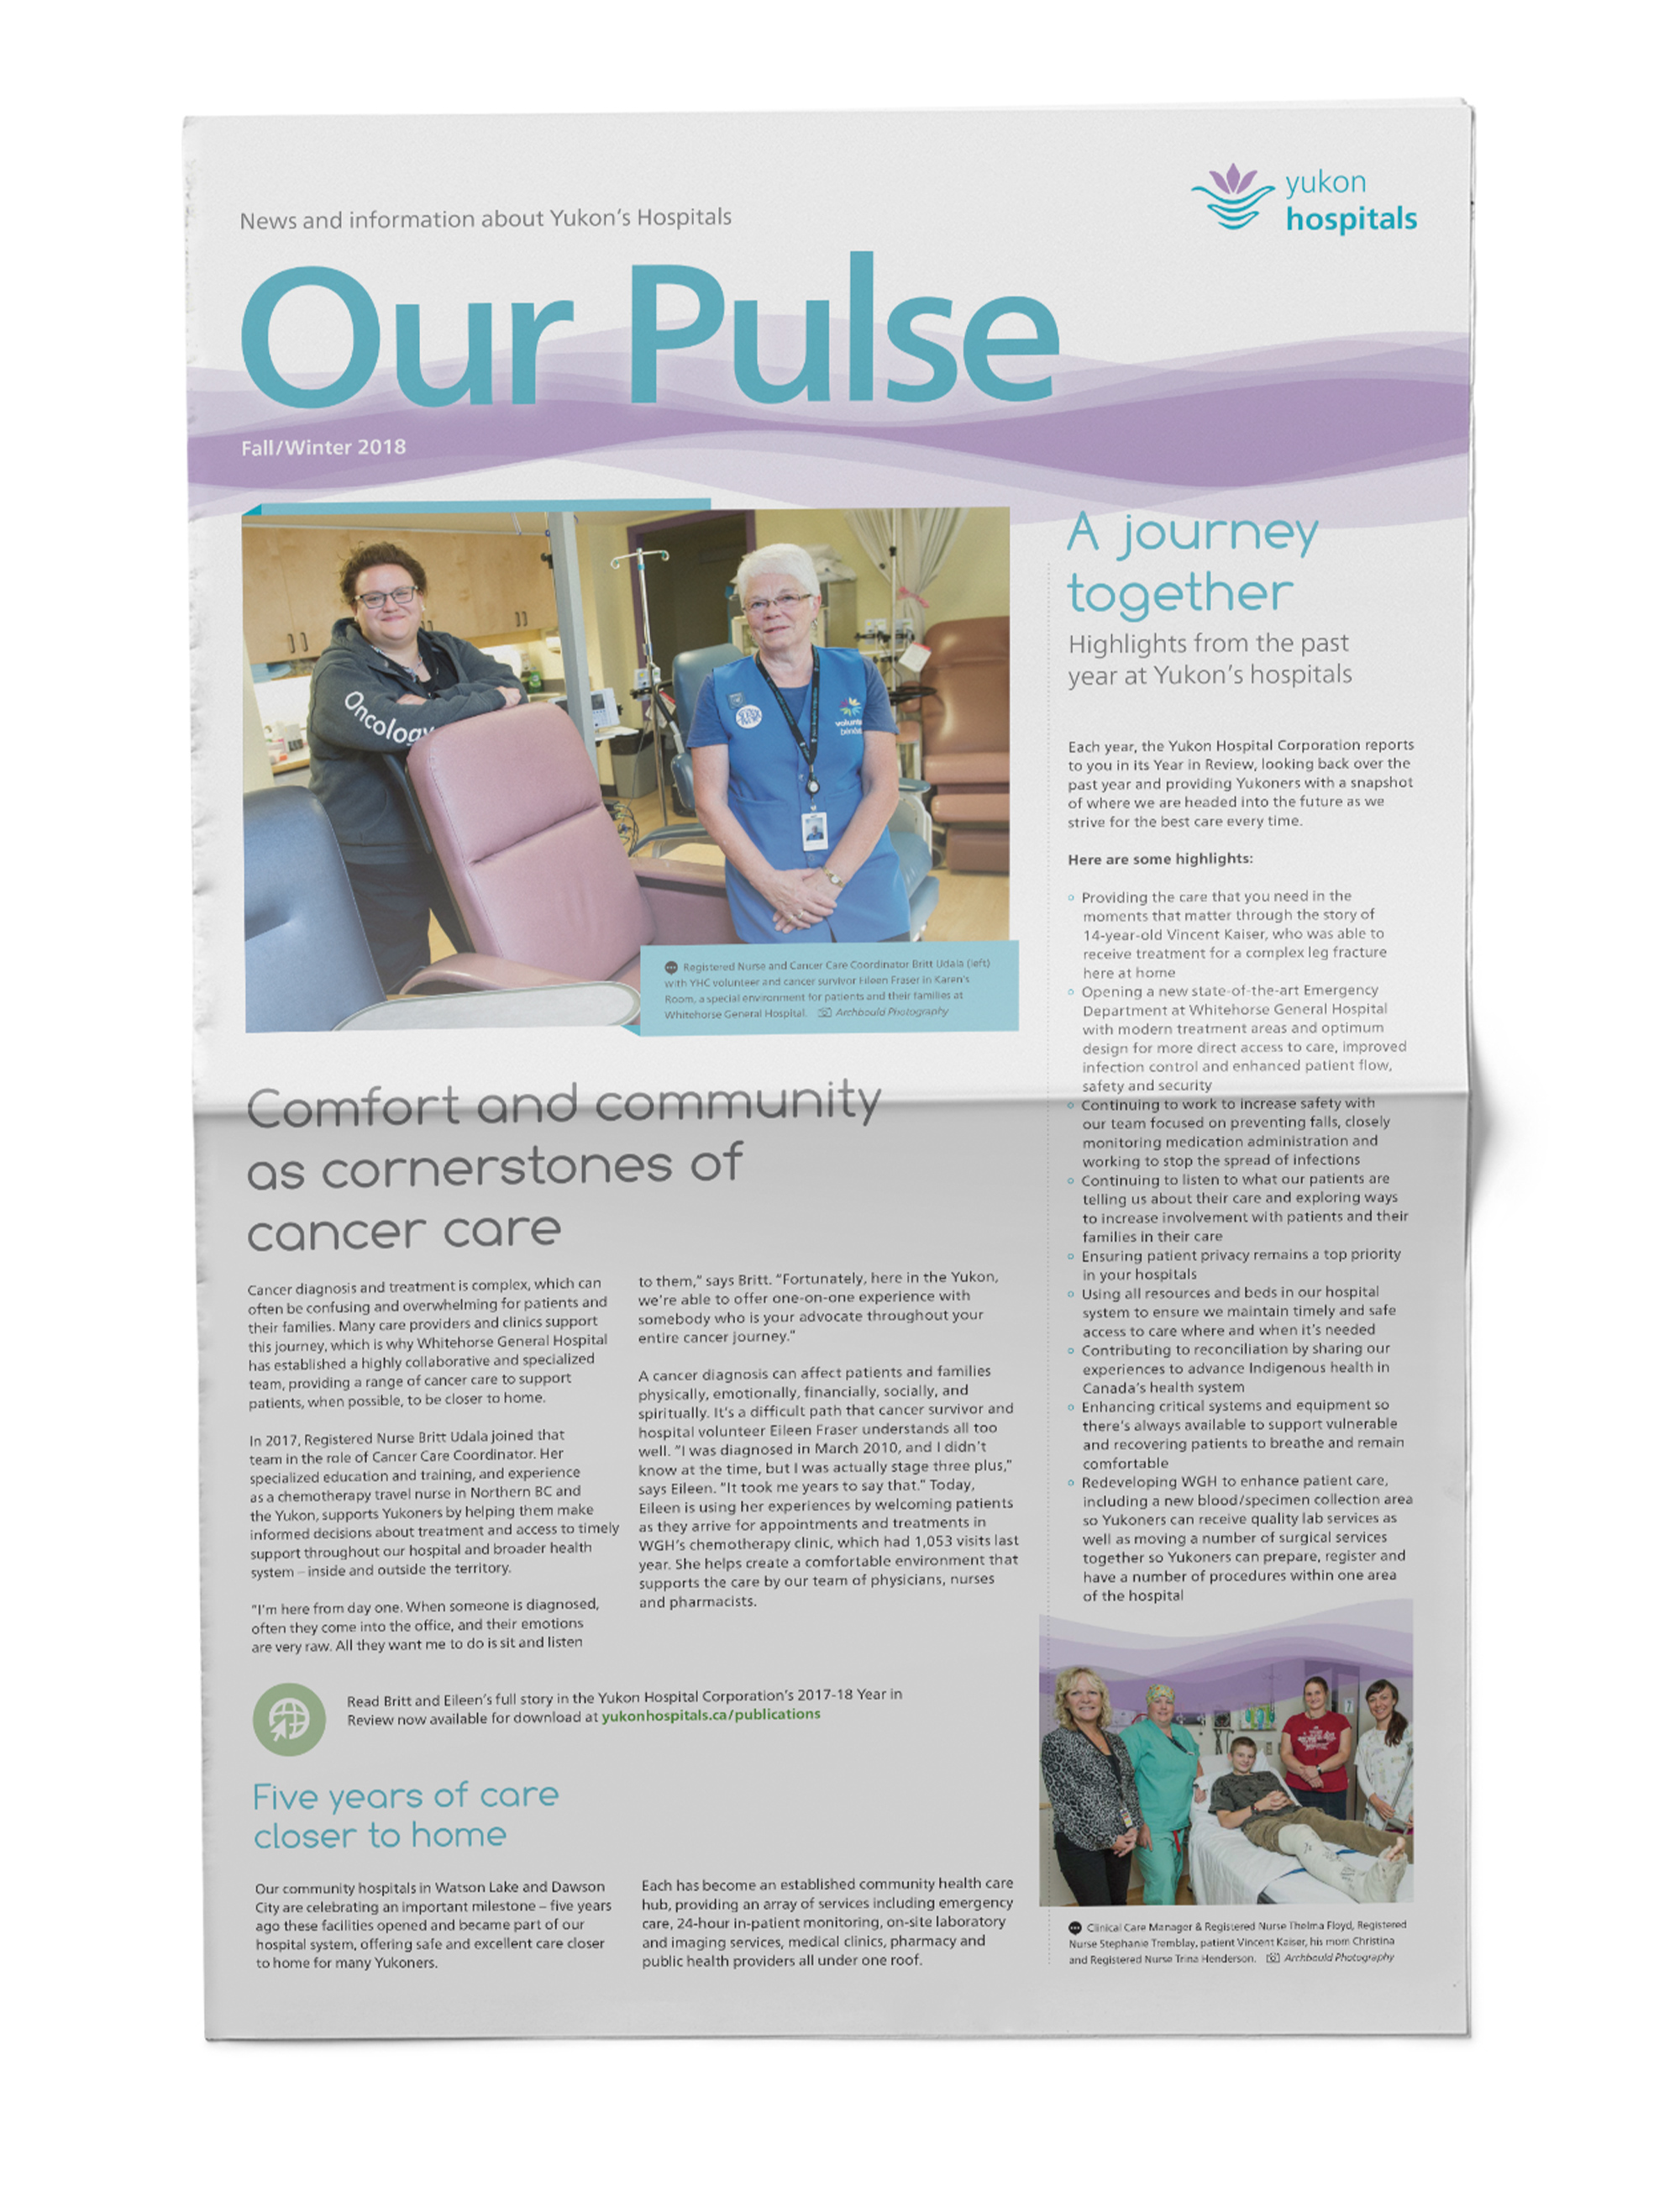 Print sample of newsletter design showing open cover for the Yukon Hospitals.